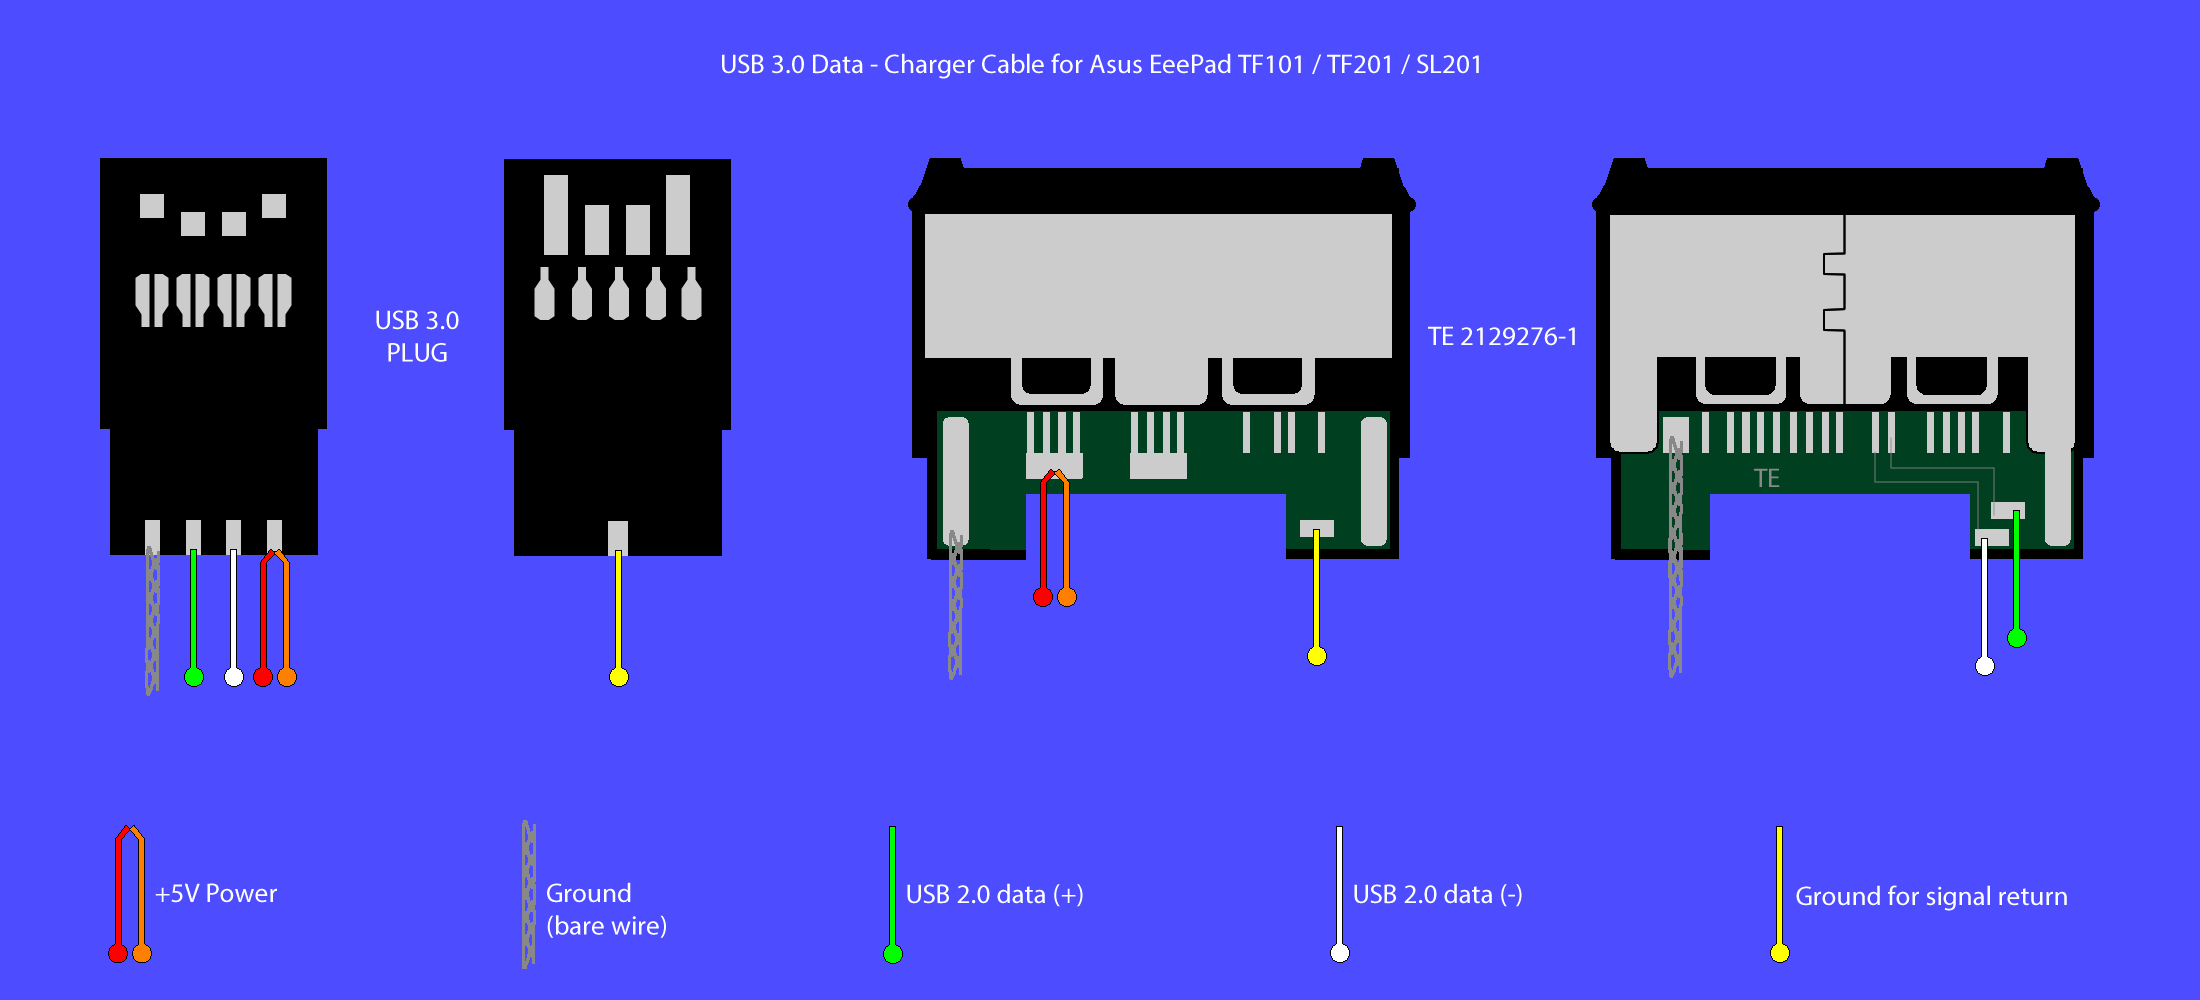 Soldering - Rewiring Usb Connector On Asus Transformer - Super User - Usb Wiring Diagram Clear White Wires